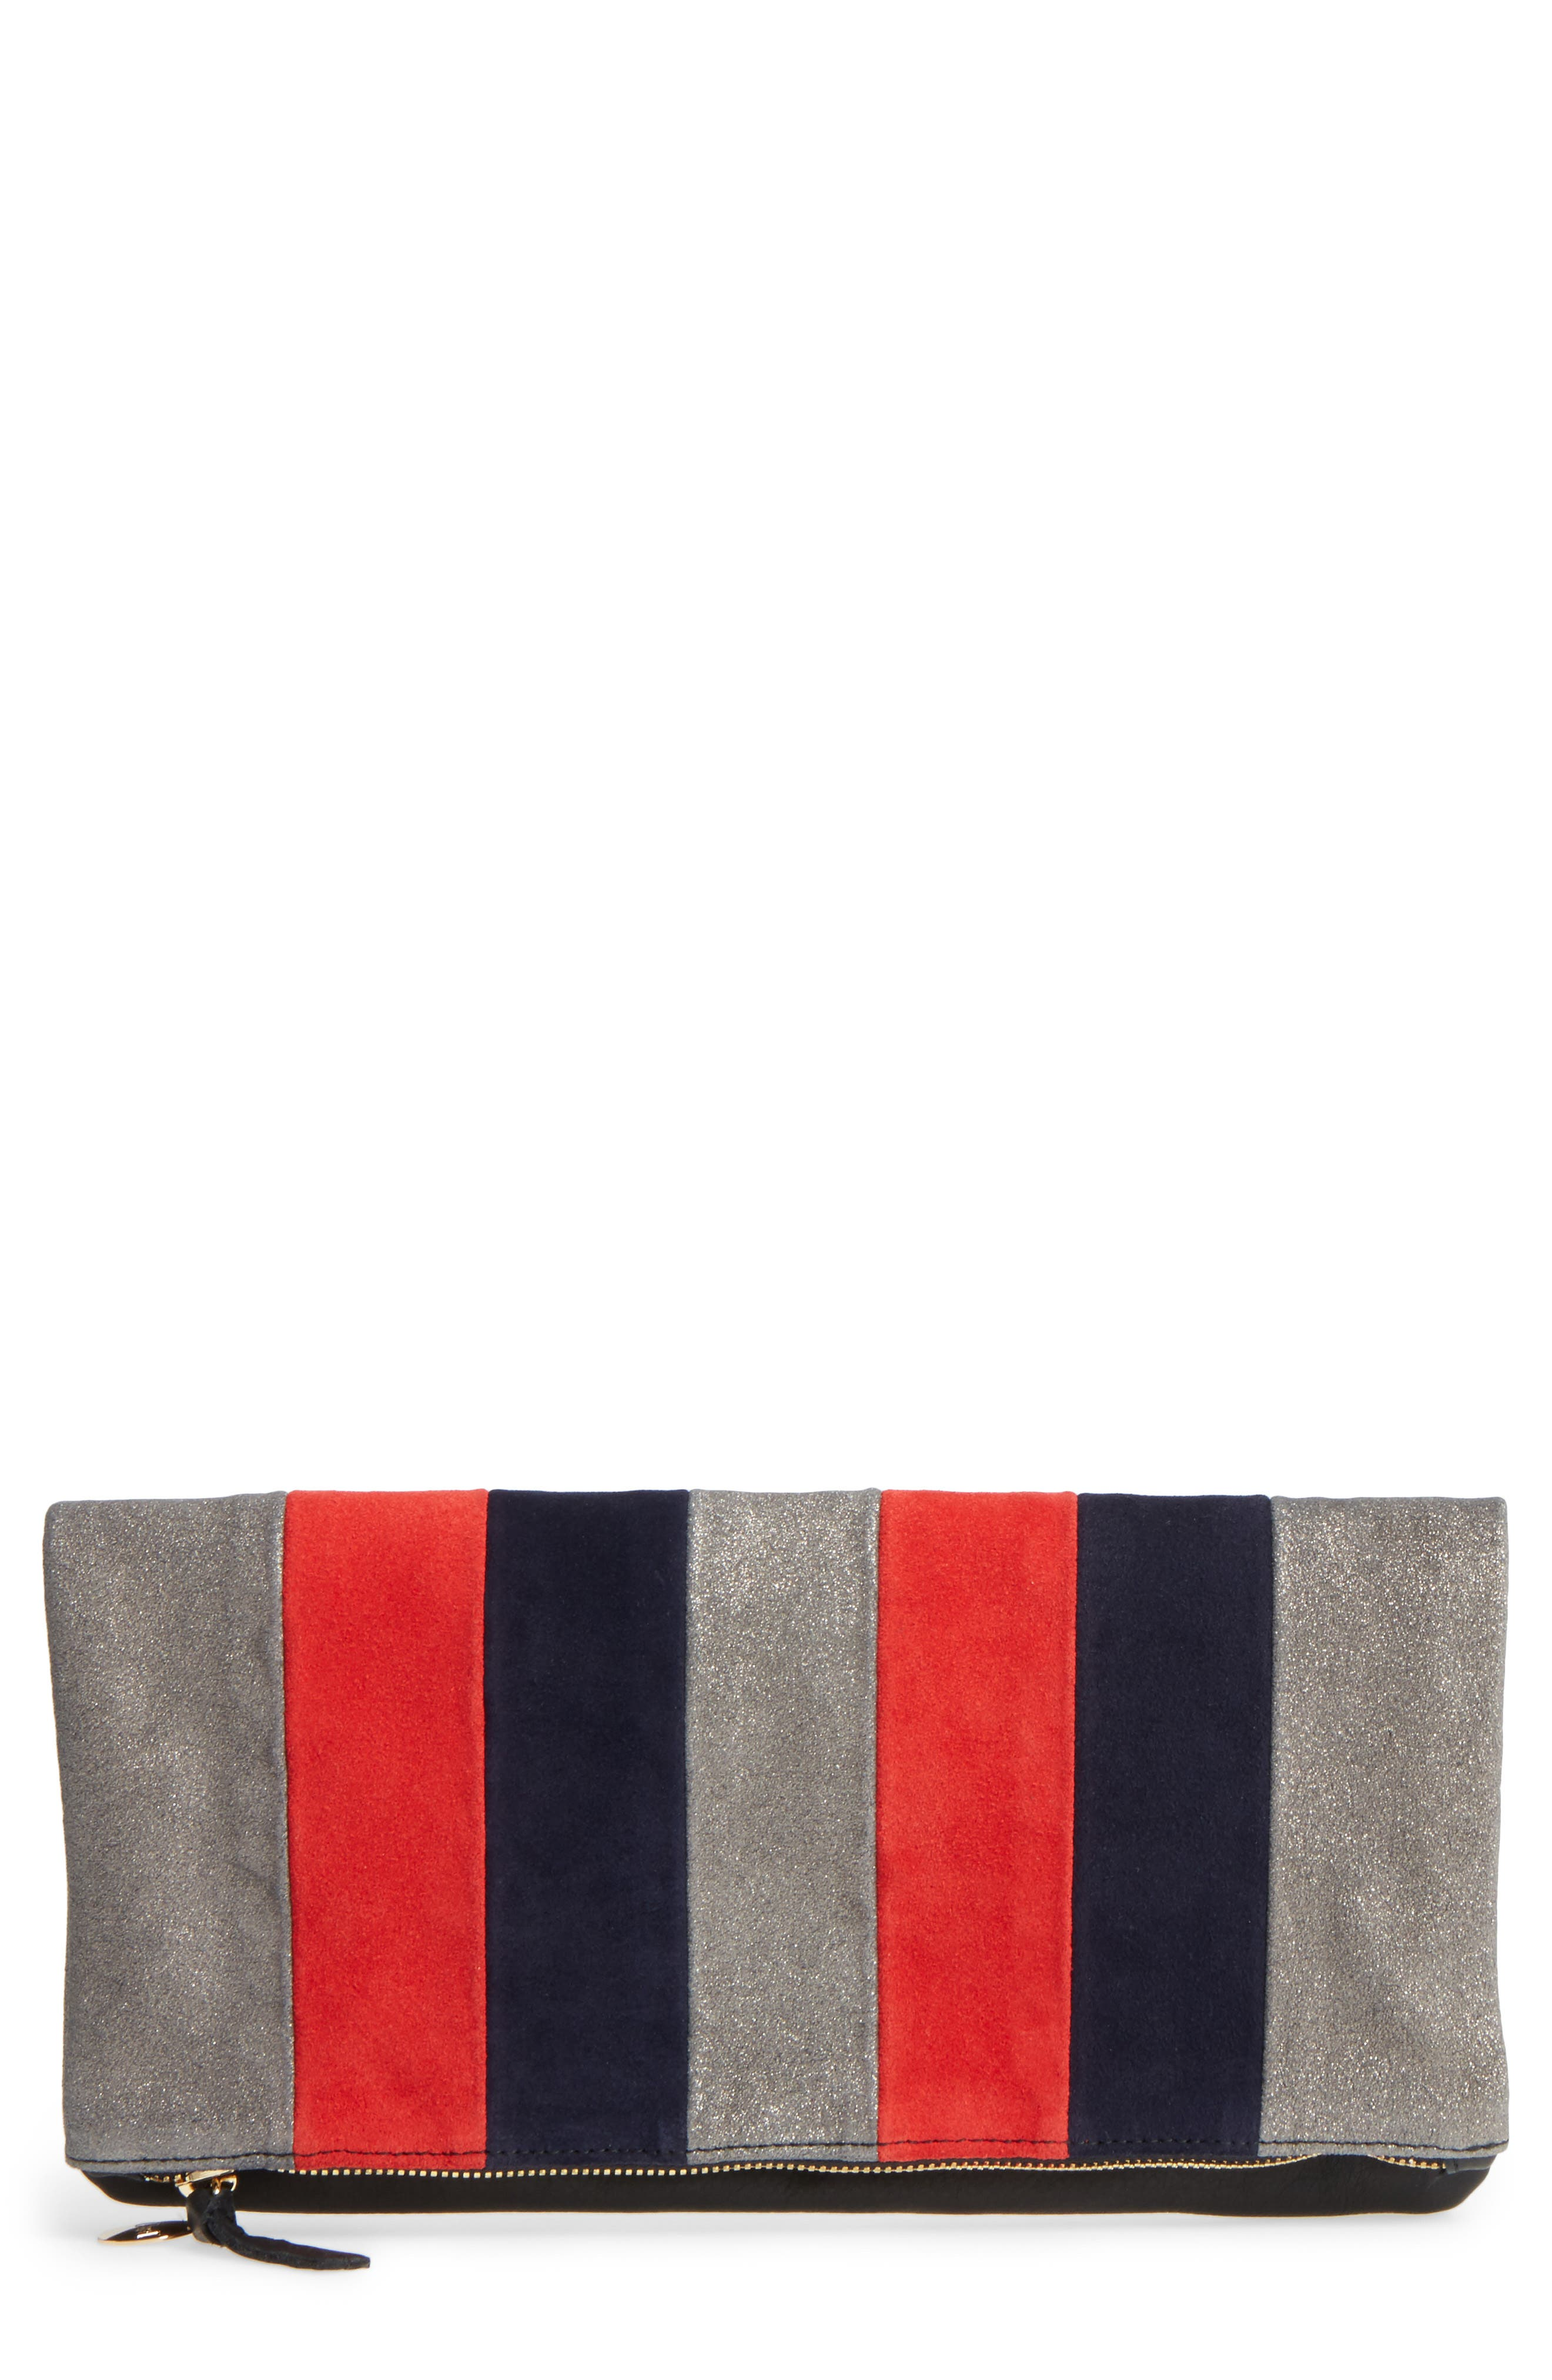 Mixed Media Stripe Leather Foldover Clutch,                         Main,                         color,